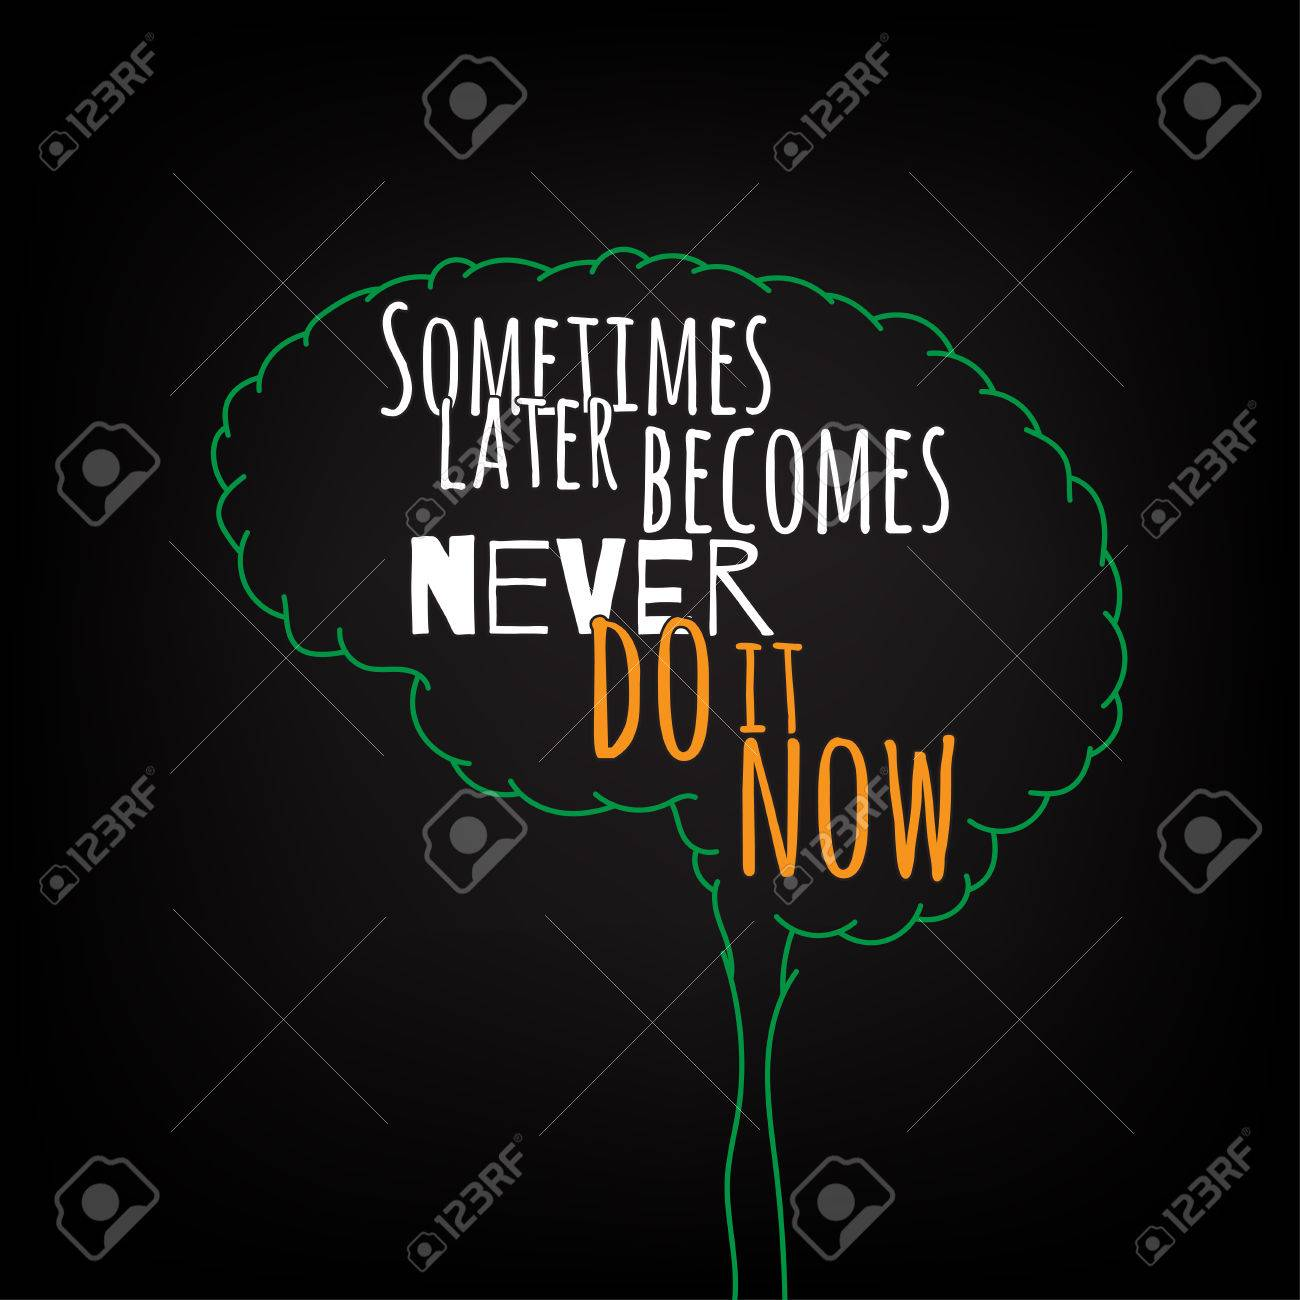 sometimes later becomes never do it now motivation clever ideas in the brain poster text